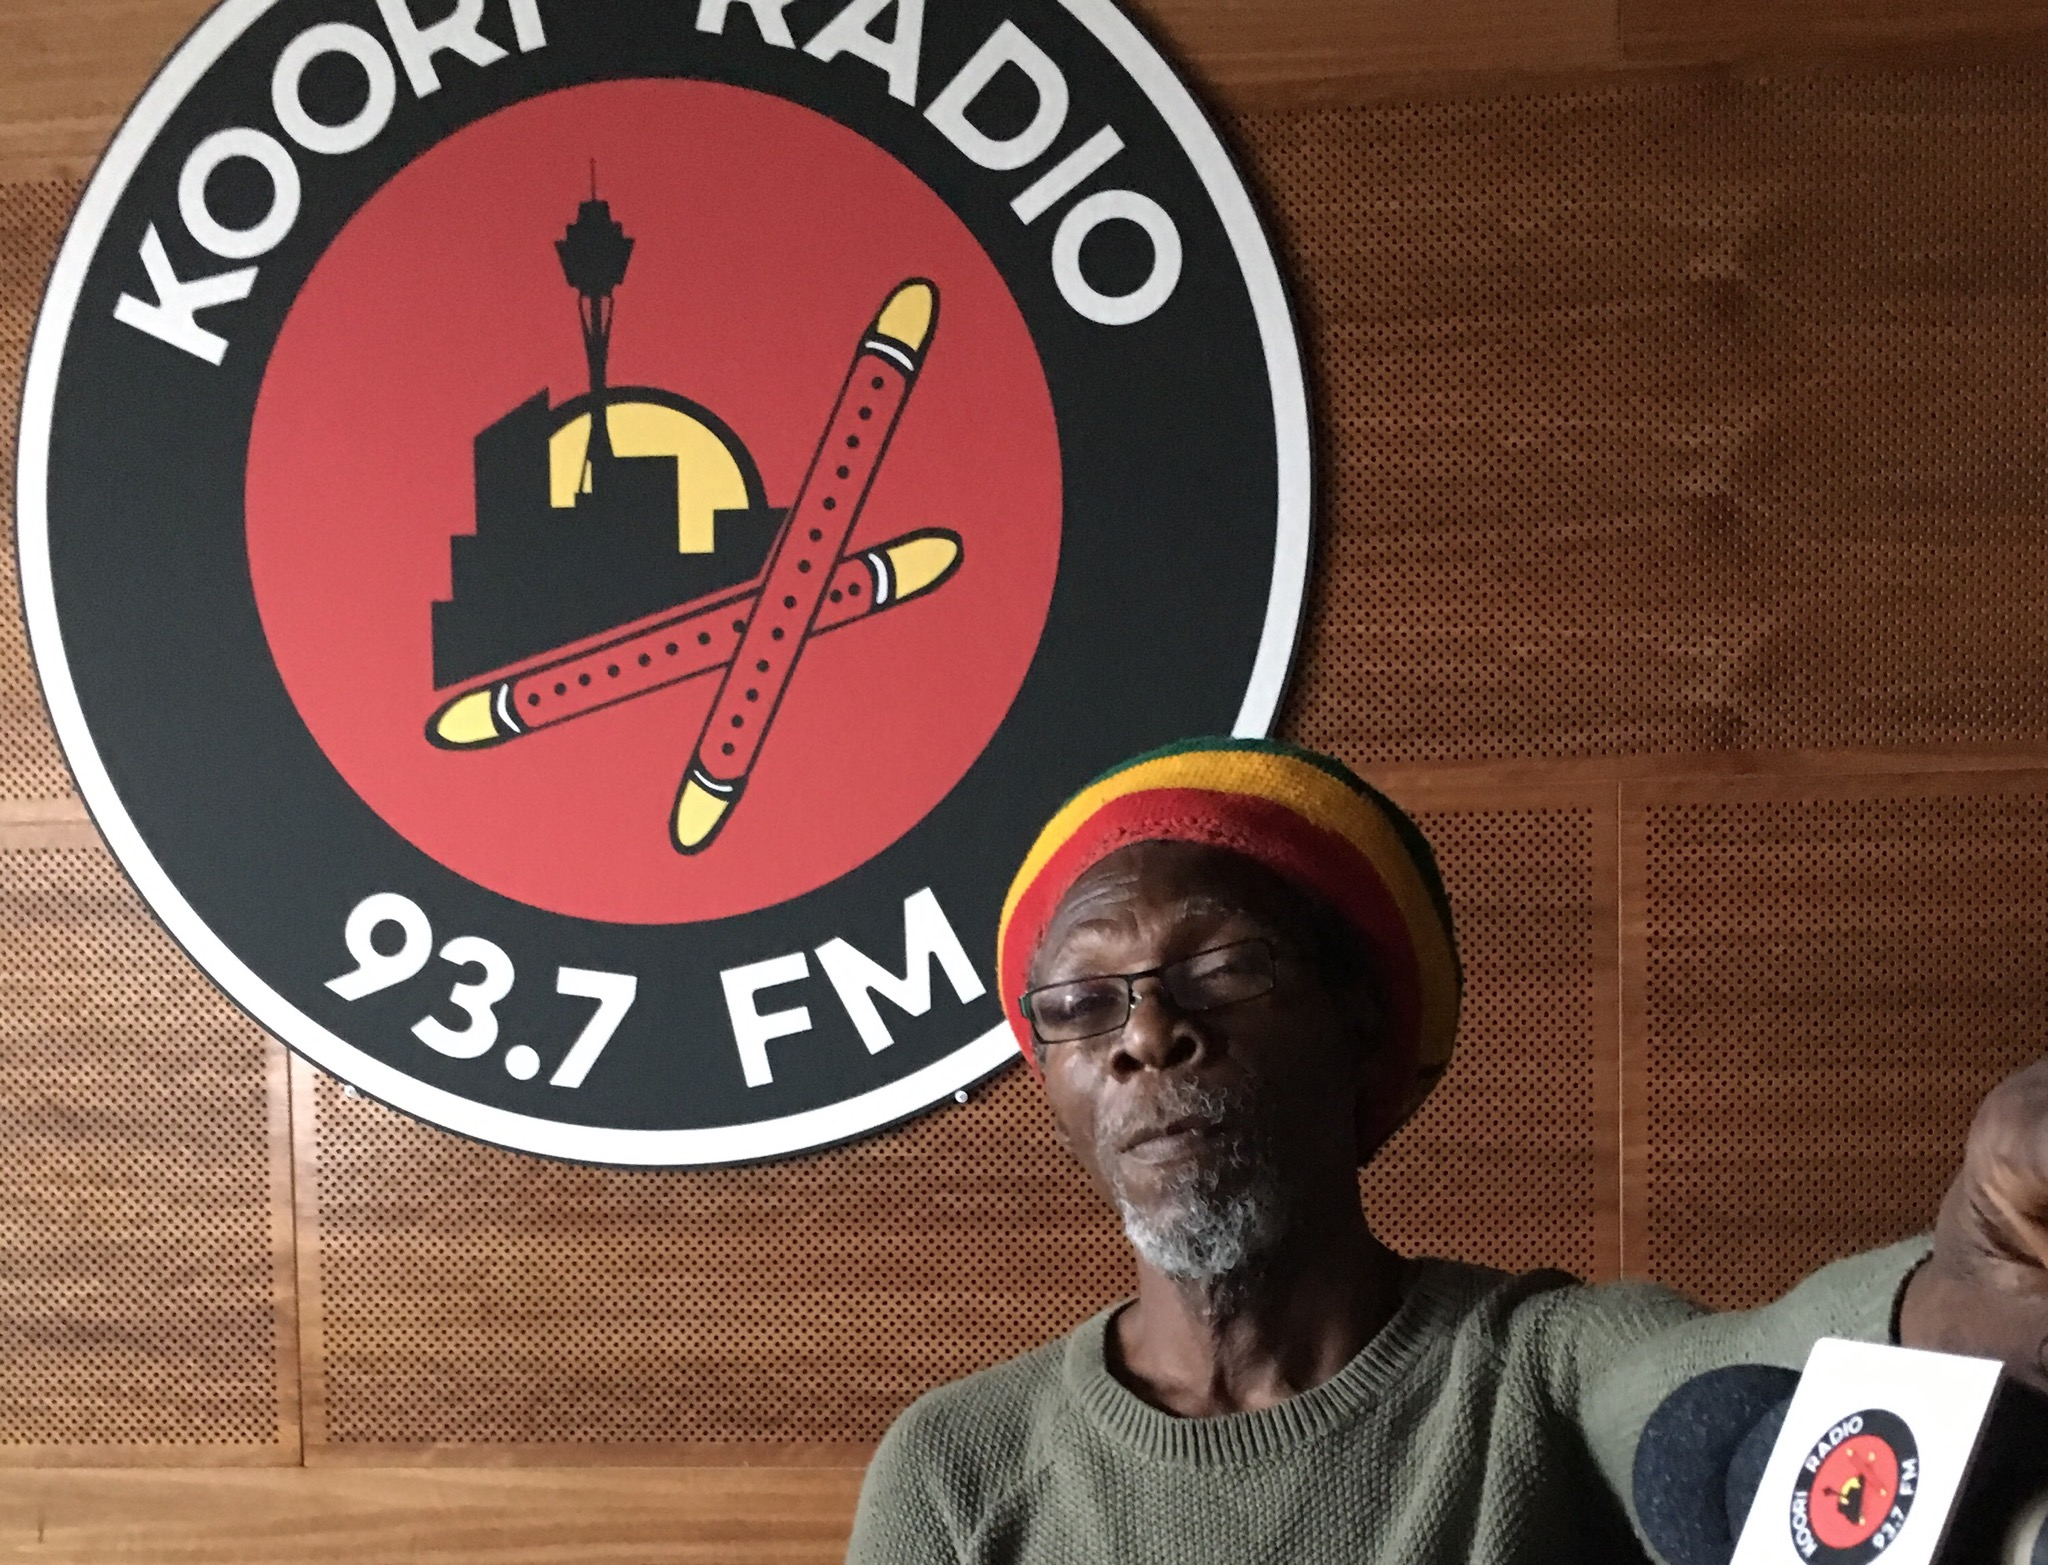 Black Roots & Iration with Ibo Jah on Koori Radio